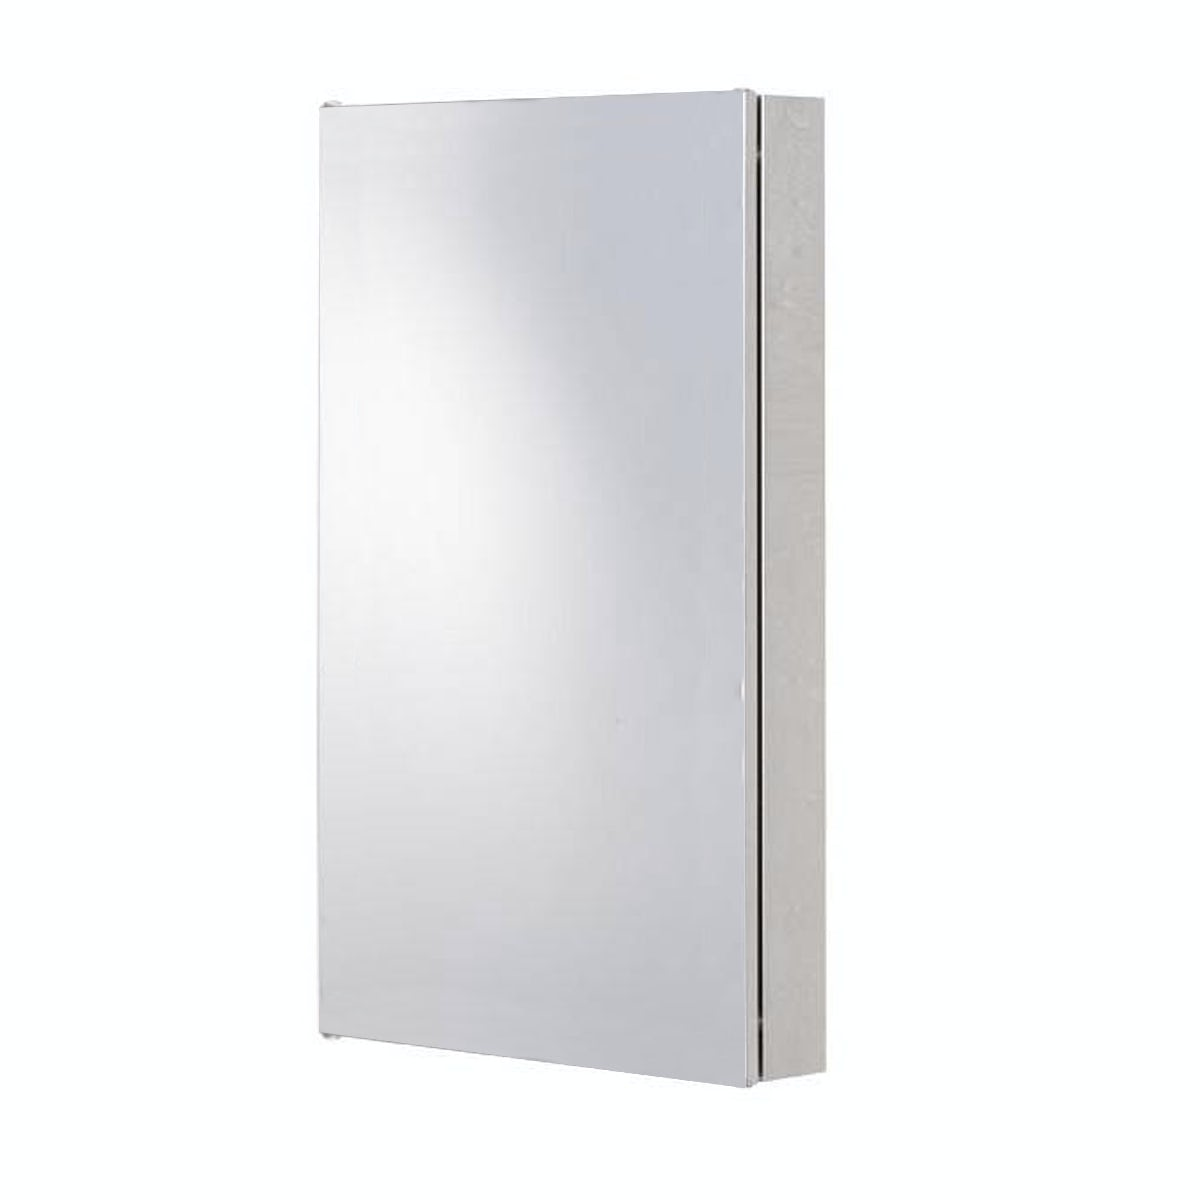 Stainless Steel Kitchen Cabinets Price: Orchard Radial Stainless Steel Bathroom Corner Cabinet